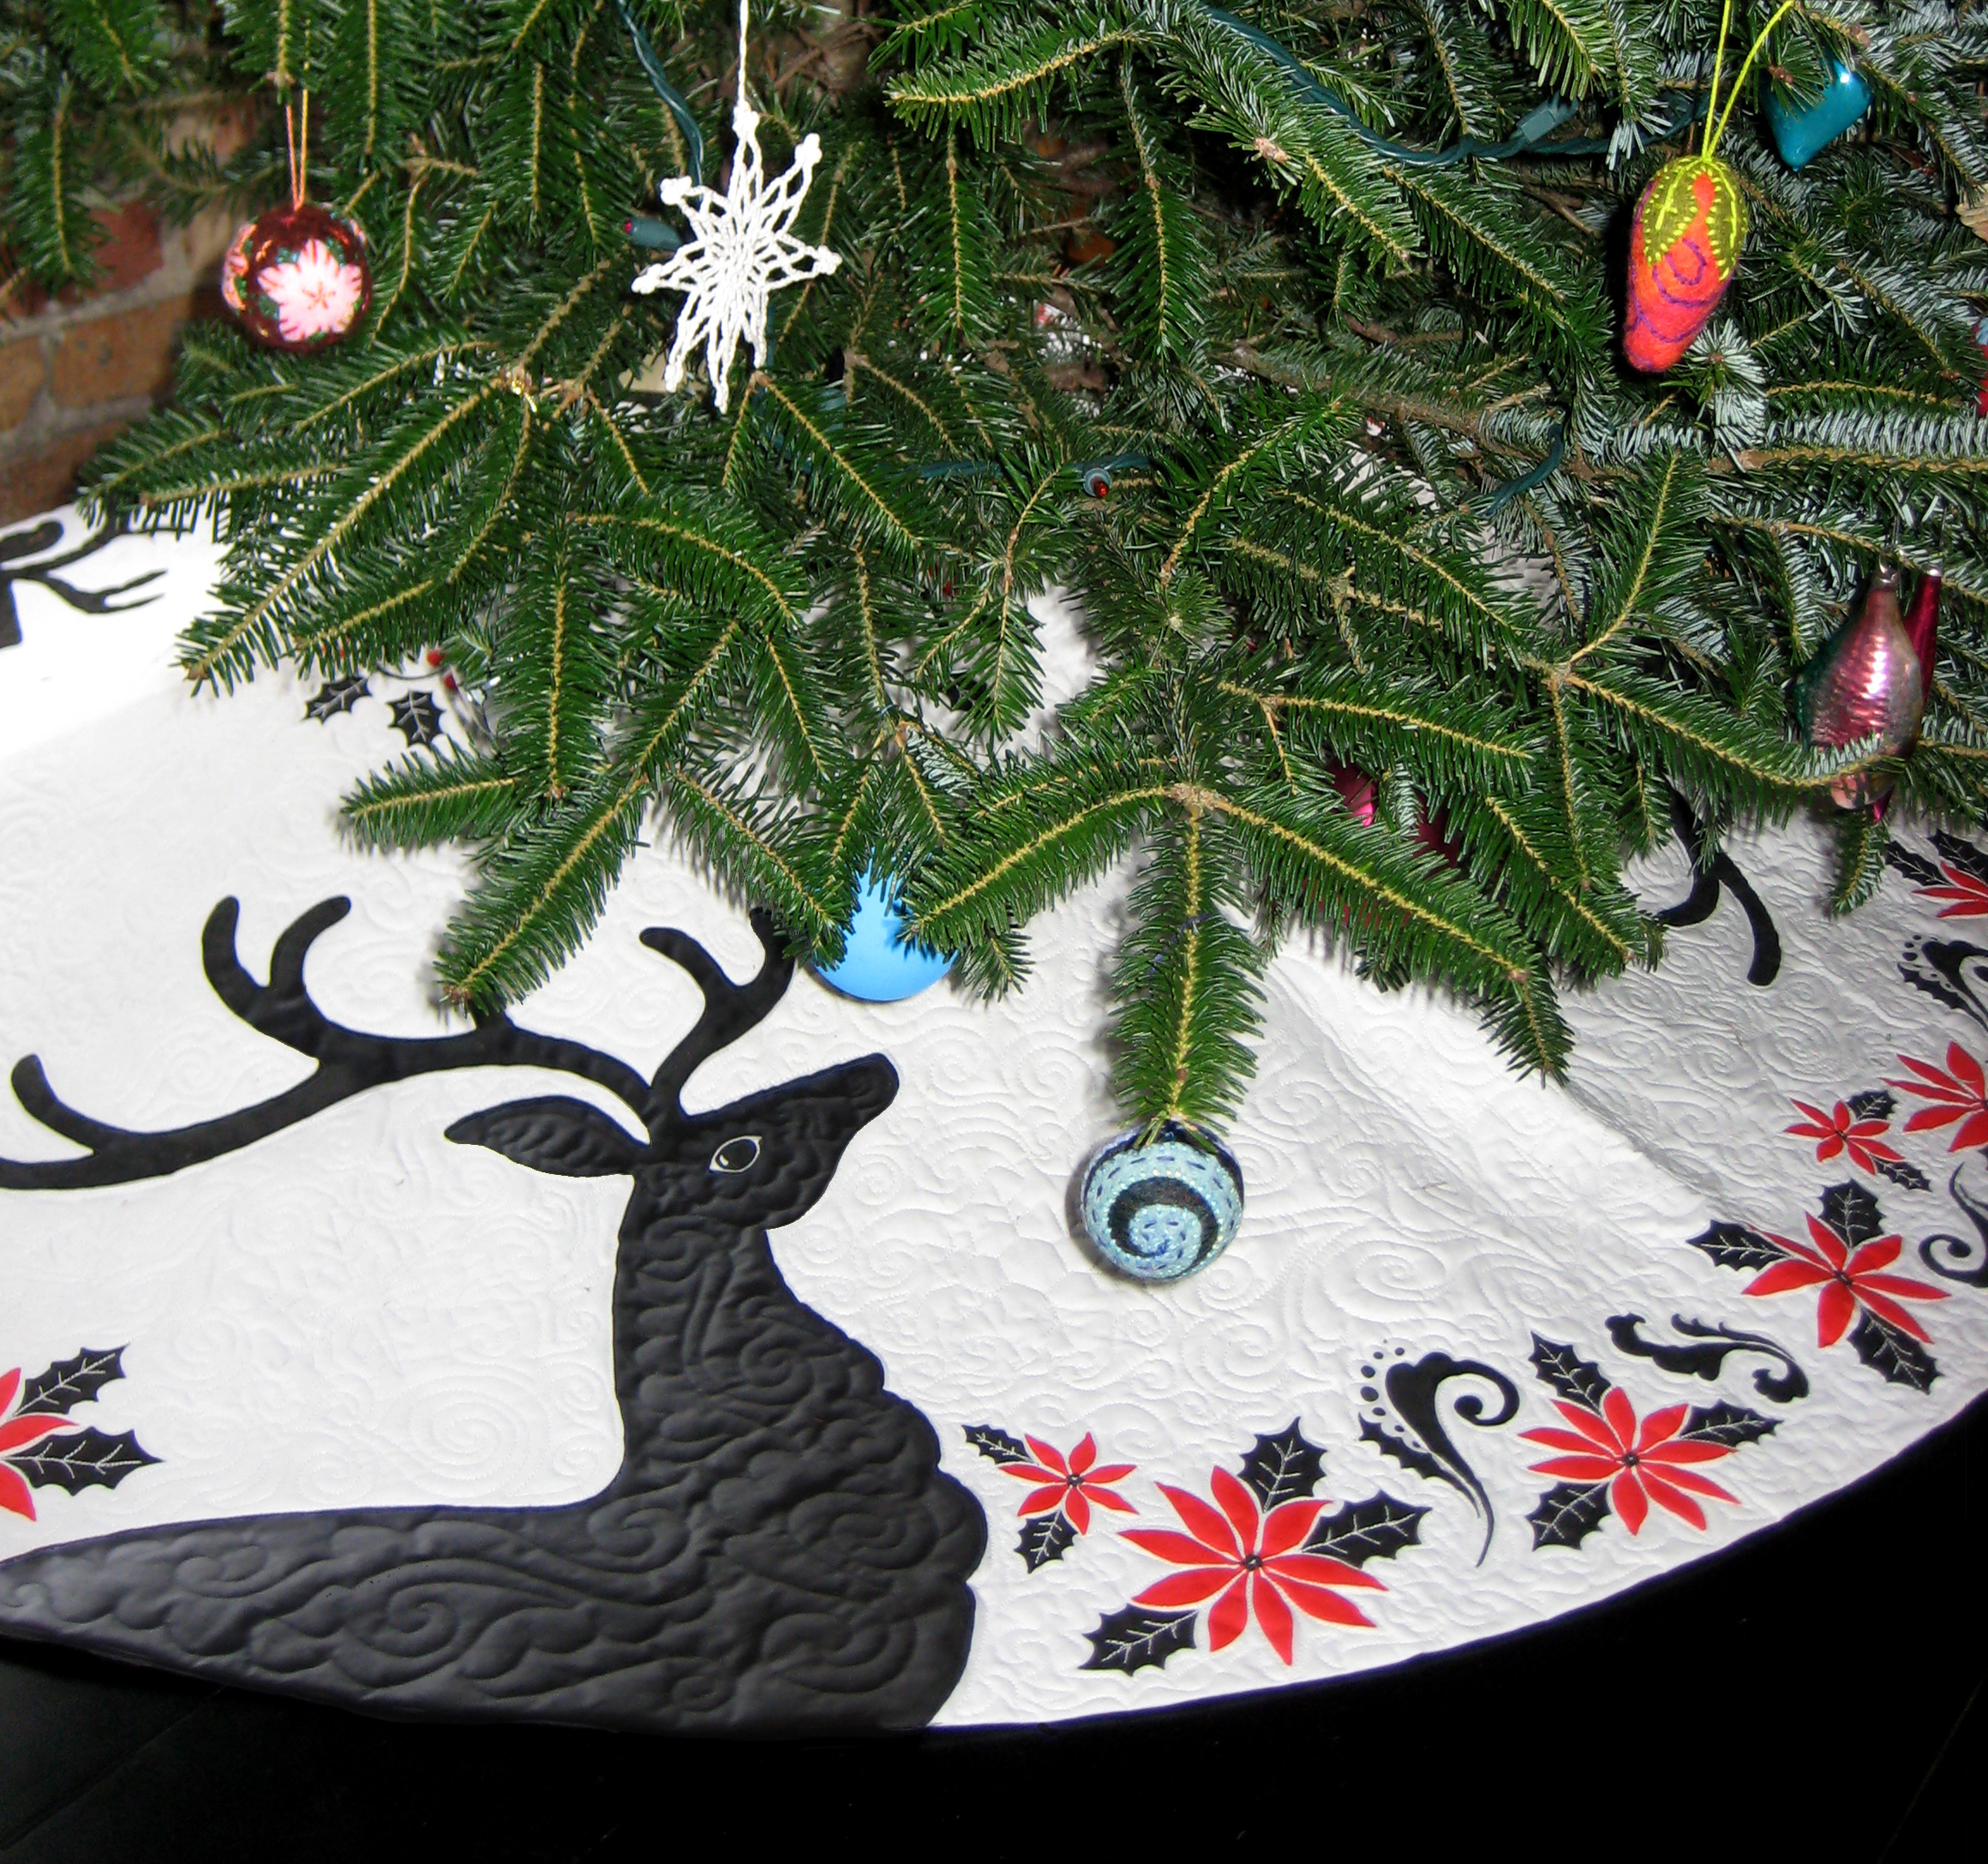 Painted Deer and Poinsettia Quilted Christmas Tree Skirt ...